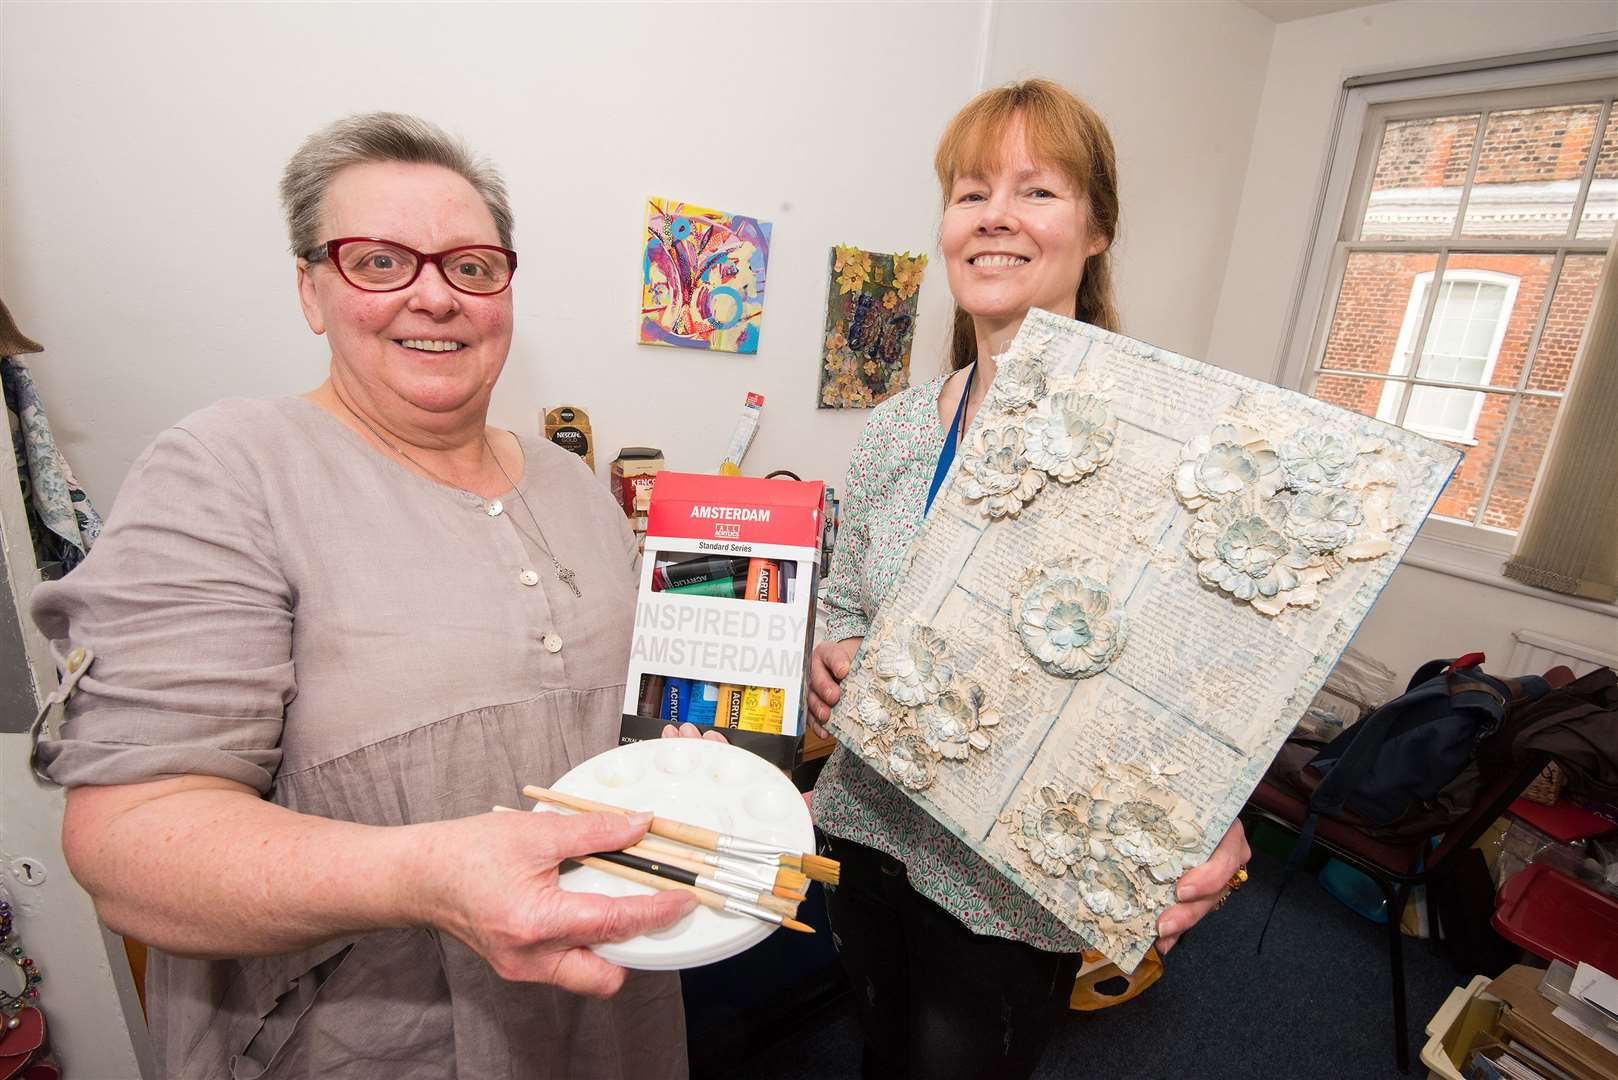 The Christopher Centre, 10 Gainsborough St, Sudbury Teresa Bishop and Karoline Wells.C'Art provides weekly art sessions for people with mental health conditions..Members take part in various creative projects, which has supported them through difficult situations..P Picture by Mark Westley. (8685561)